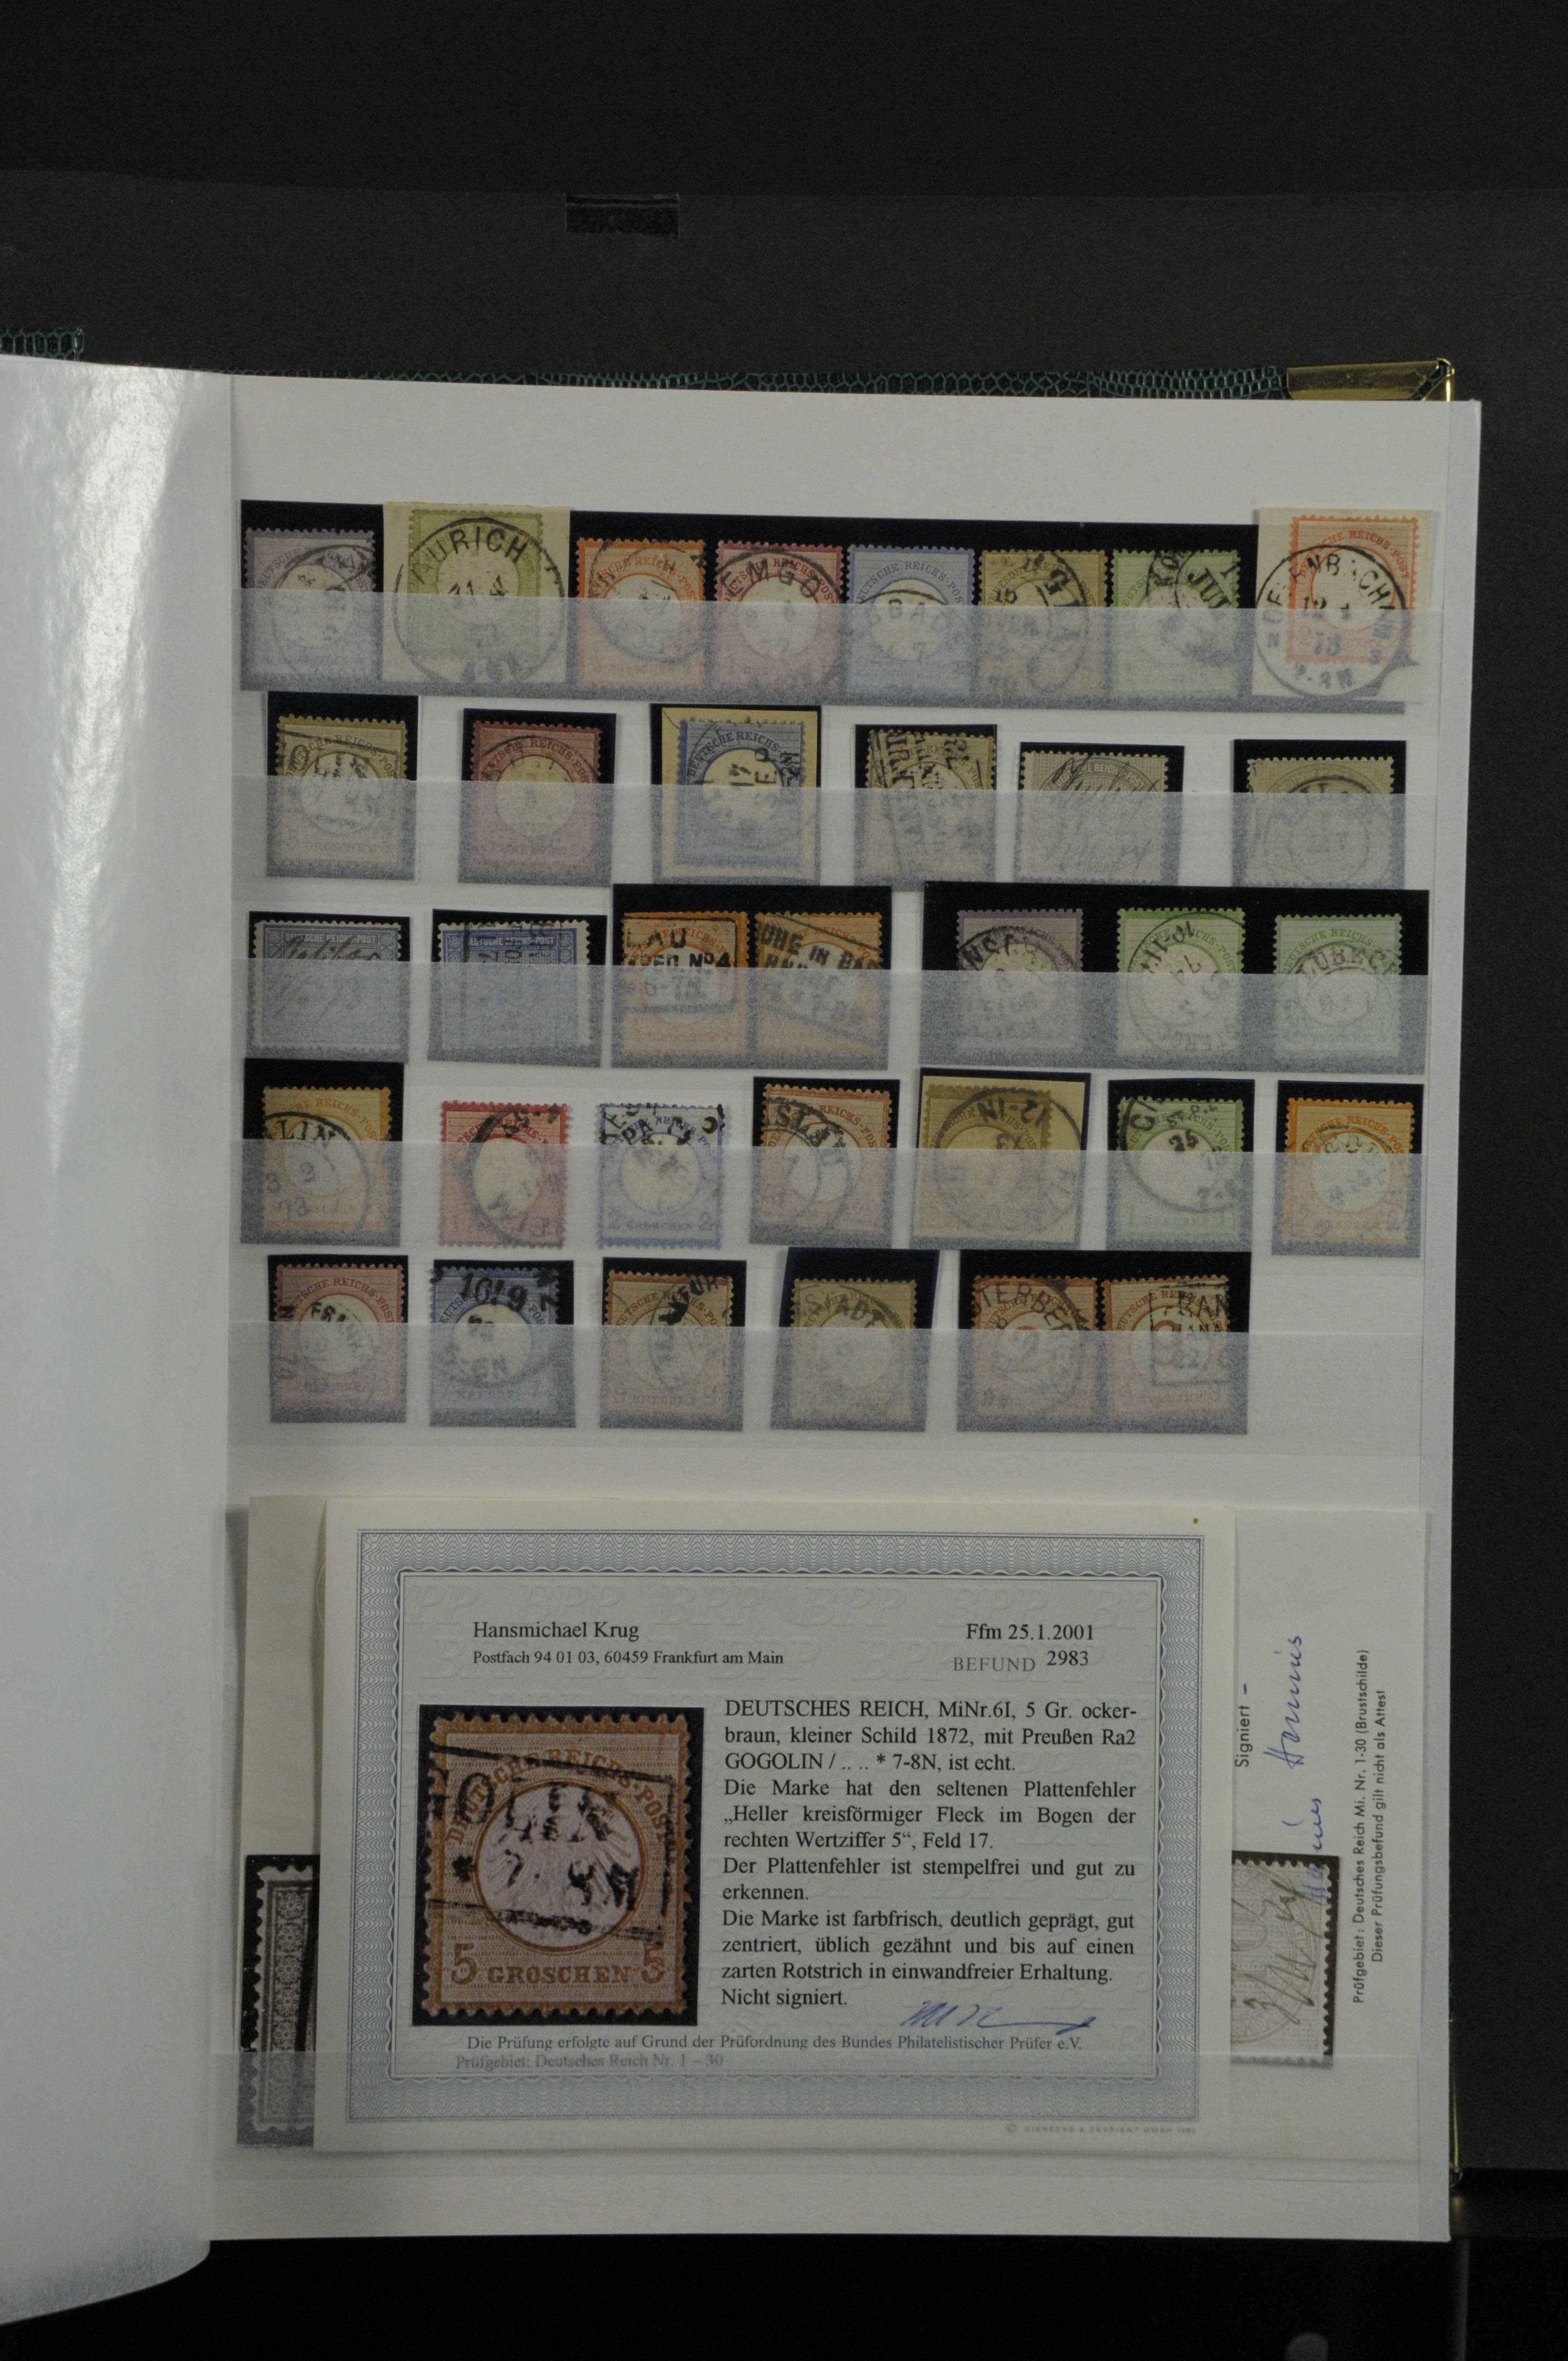 Lot 7909 - Deutsches Reich Allgemein -  Auktionshaus Ulrich Felzmann GmbH & Co. KG Auction 165 | Philately, Airmail, Zeppelinmail and Astrophilately, international,  German and collections.